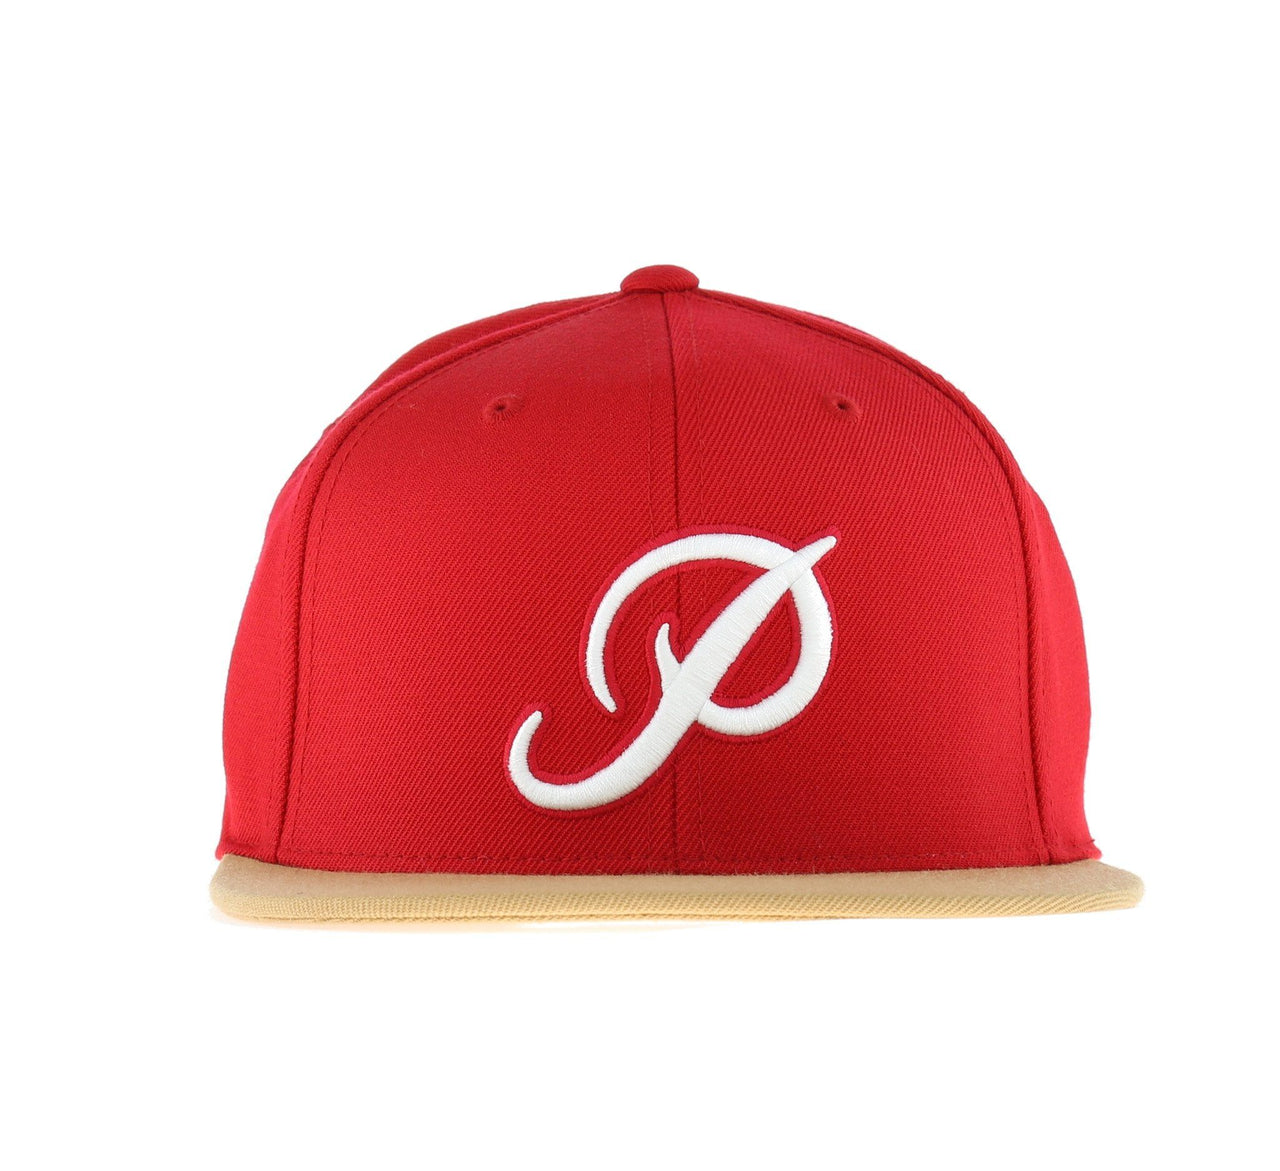 CLASSIC P SNAPBACK, RED